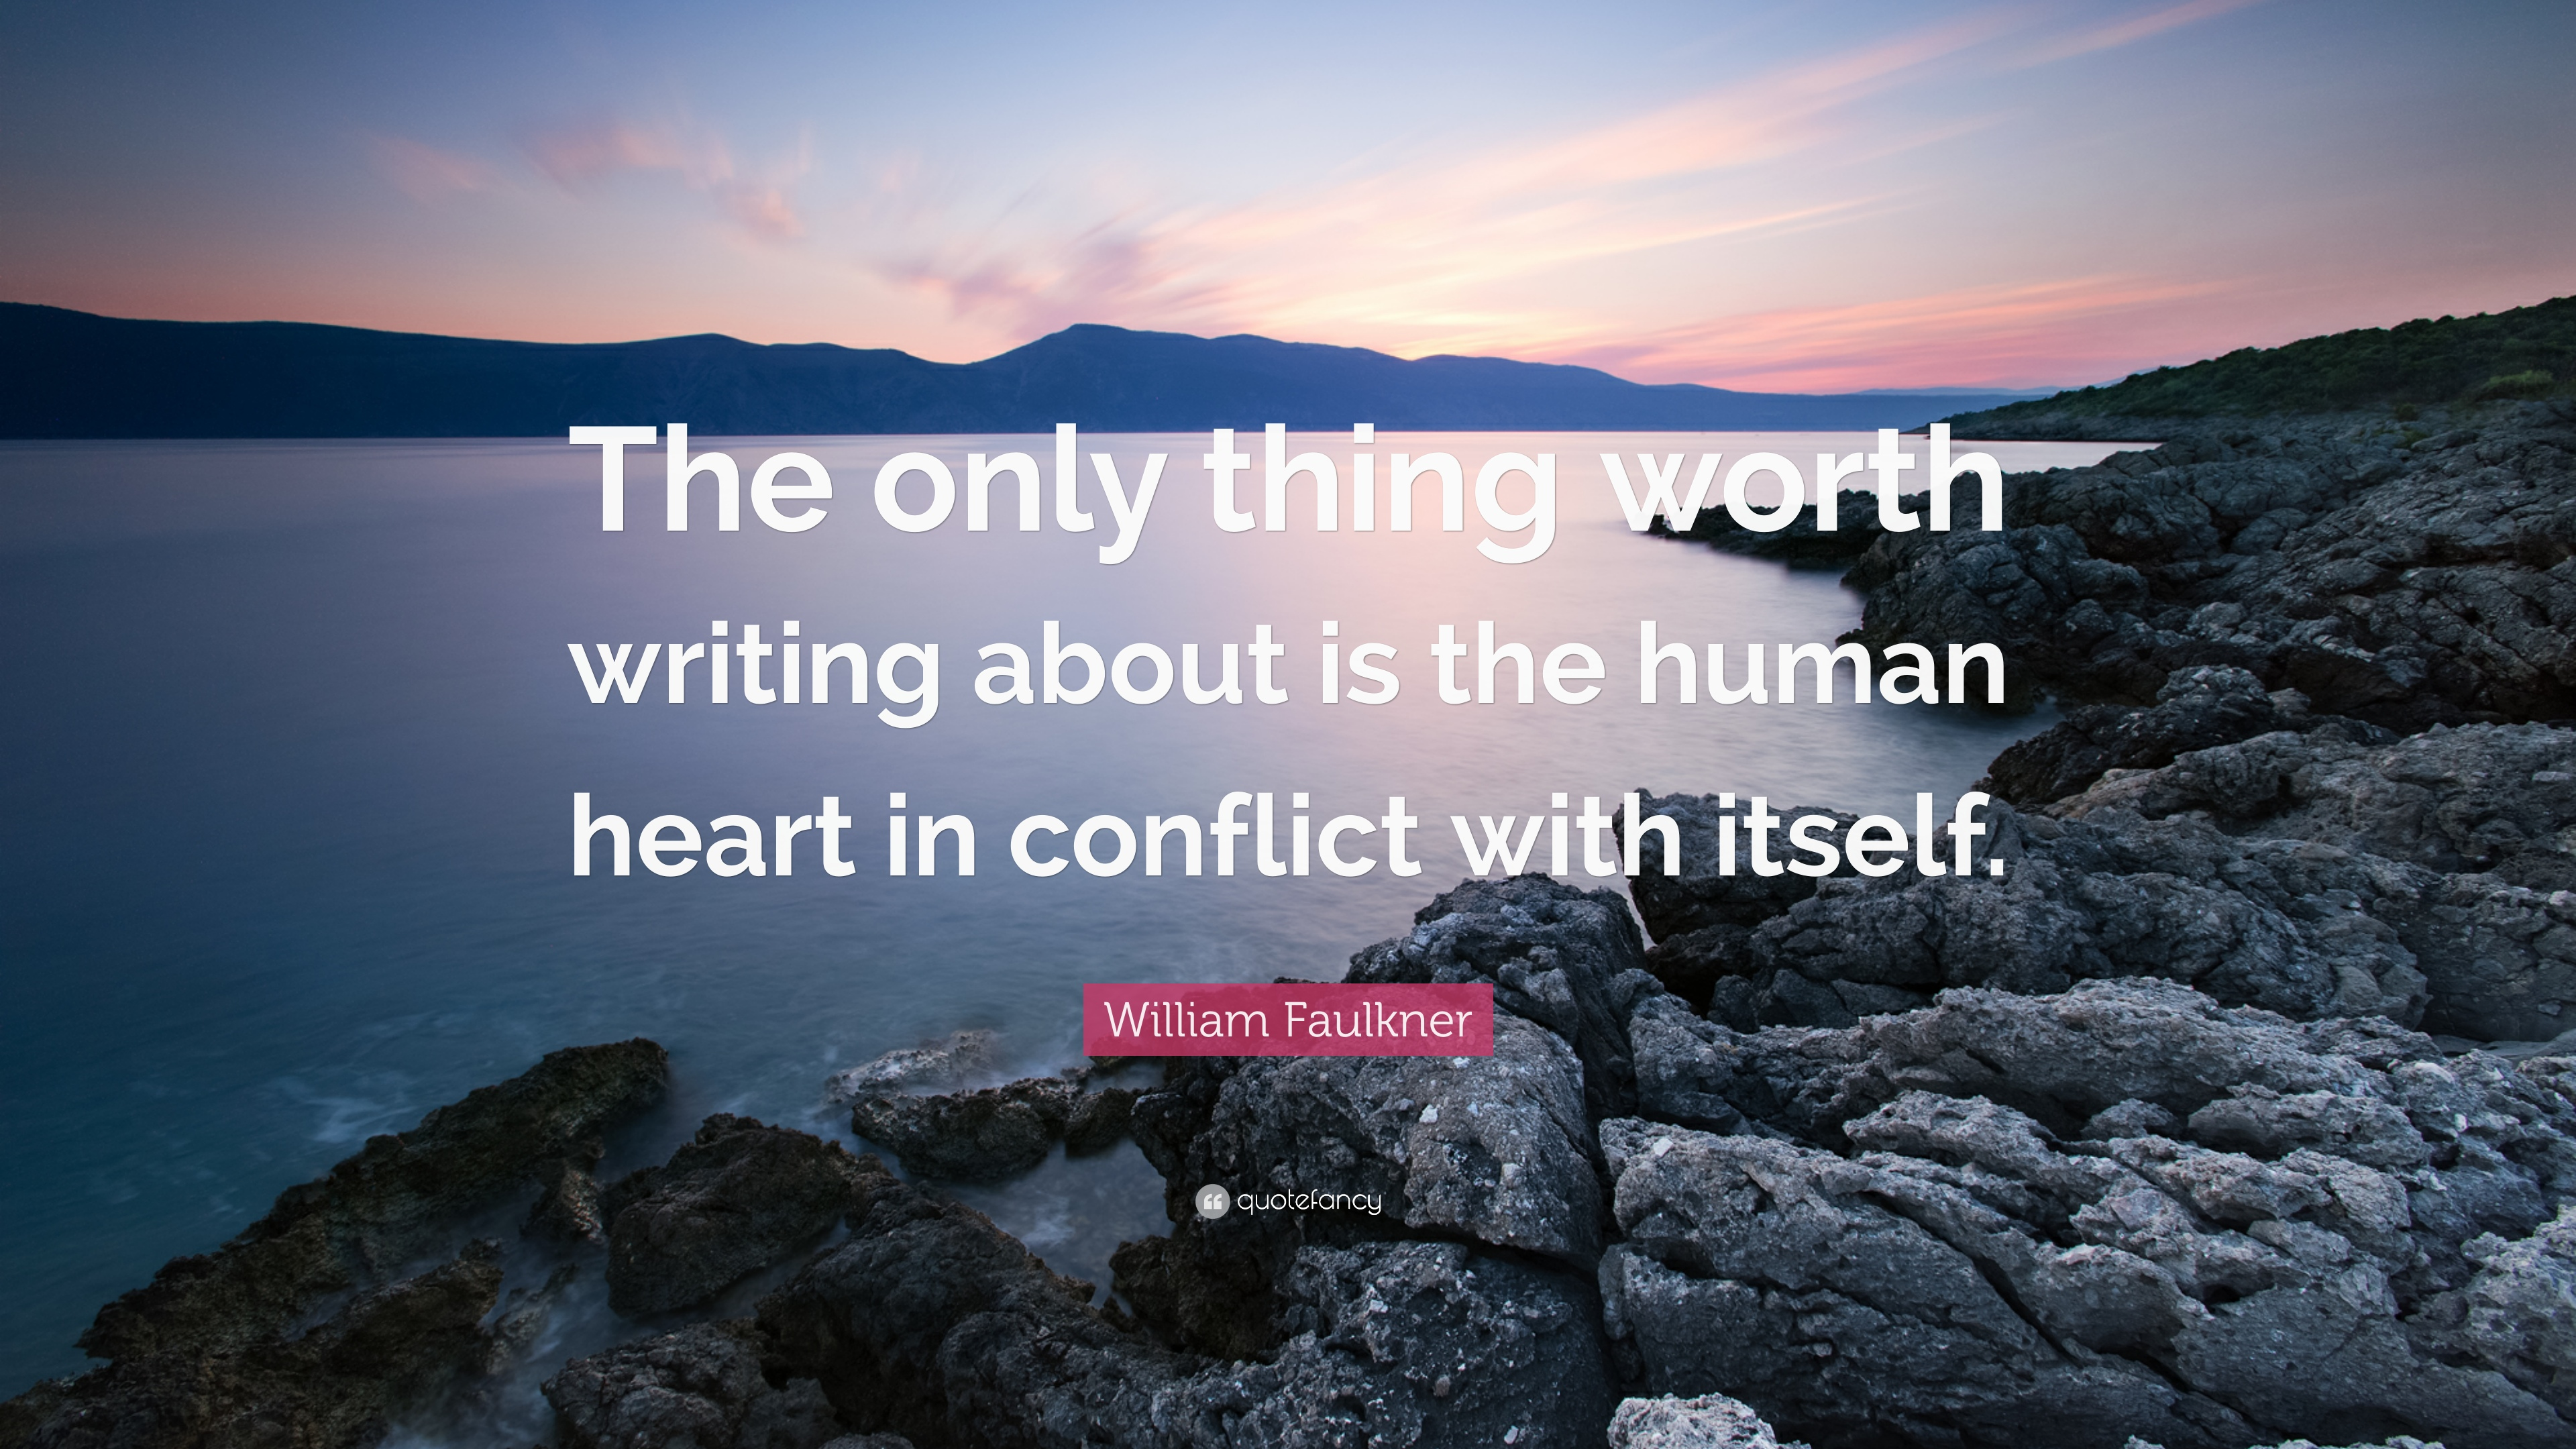 the human heart in conflict with itself